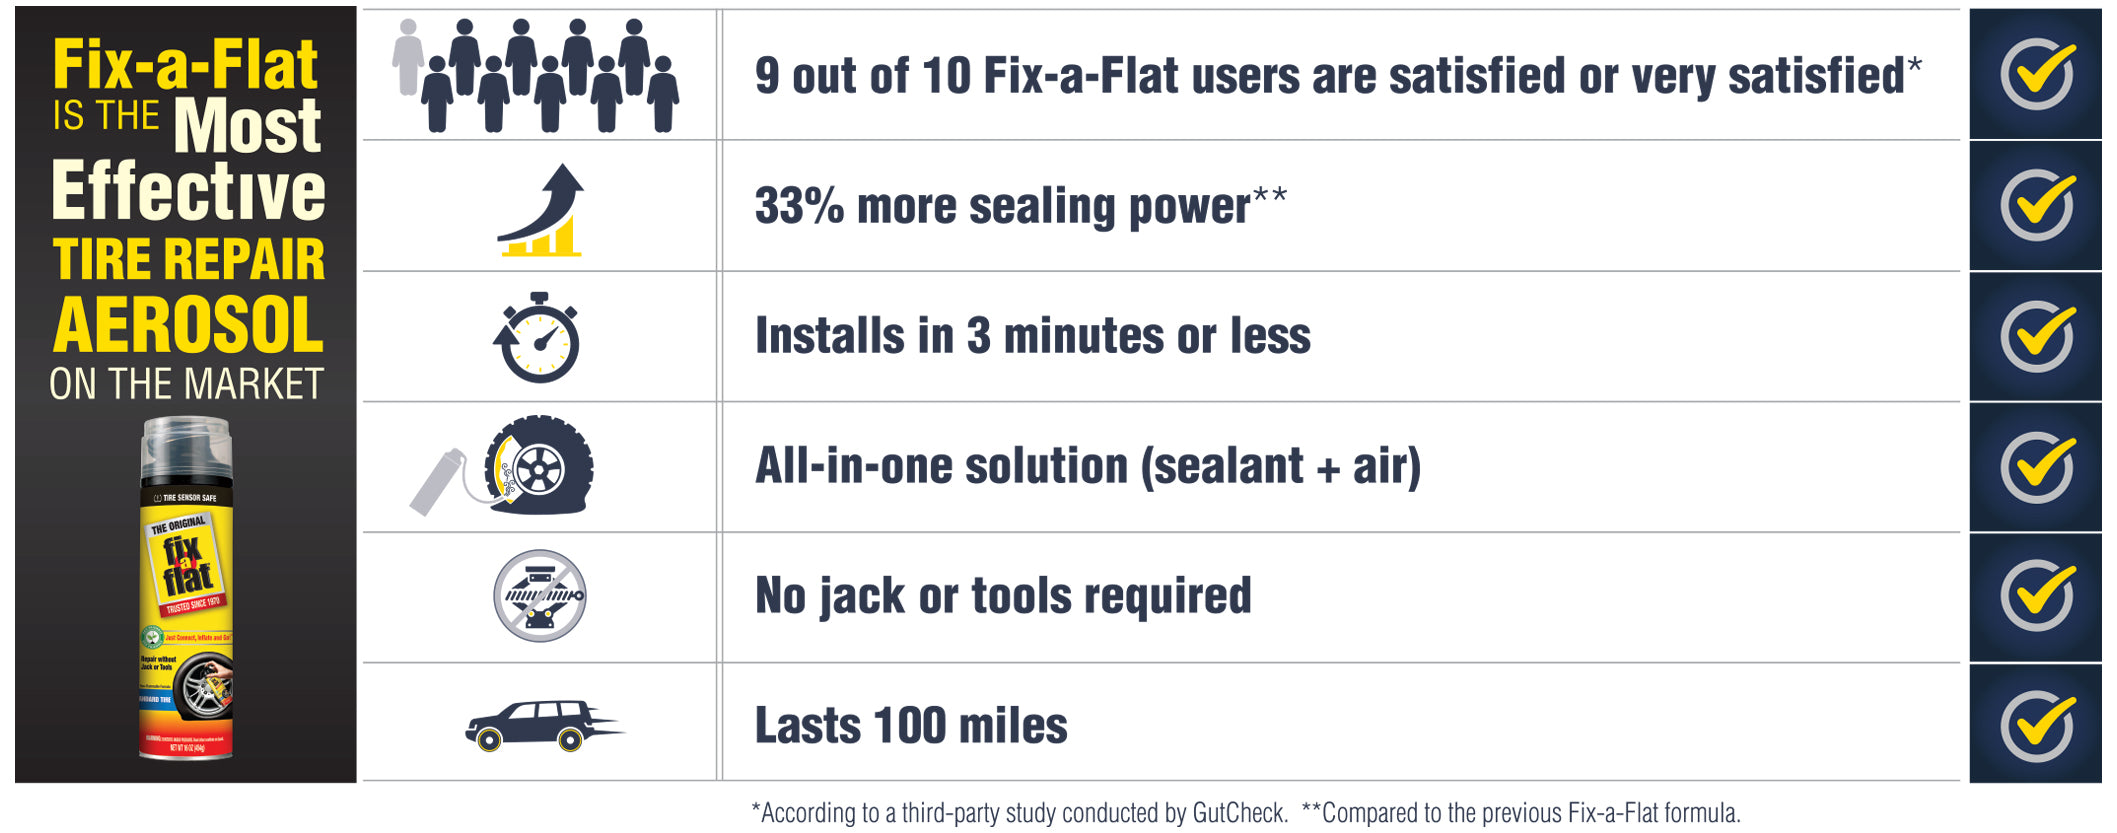 How effective is Fix-a-Flat?